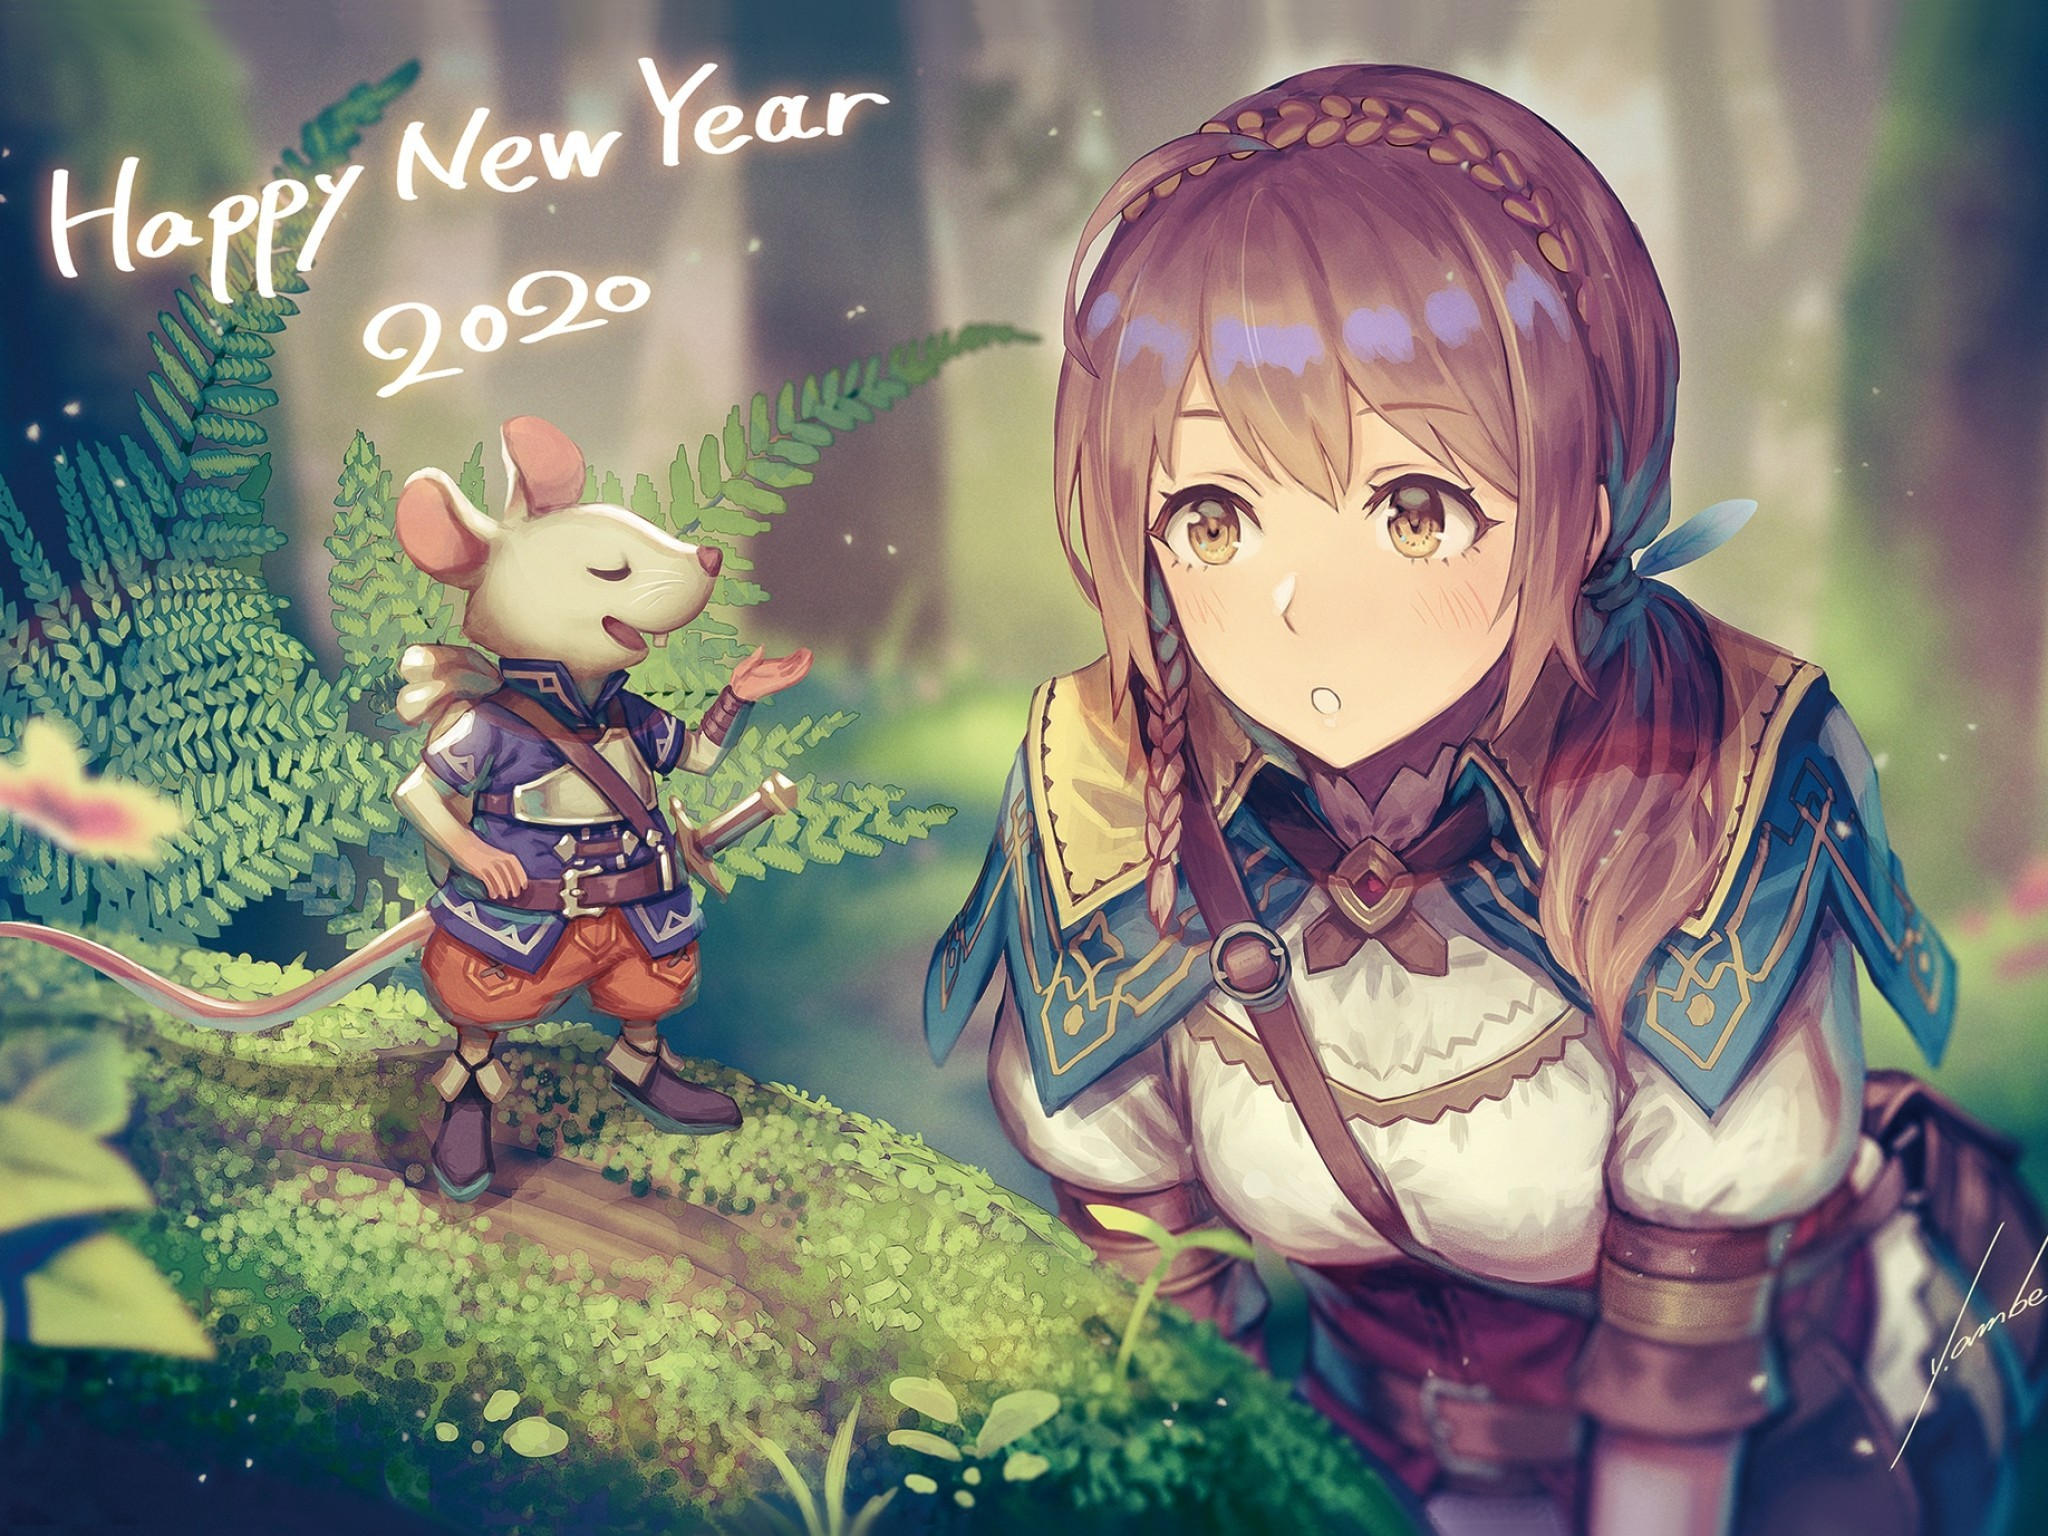 Download 2048x1536 Anime Girl Adventurer Forest Light Armor 2048x1536